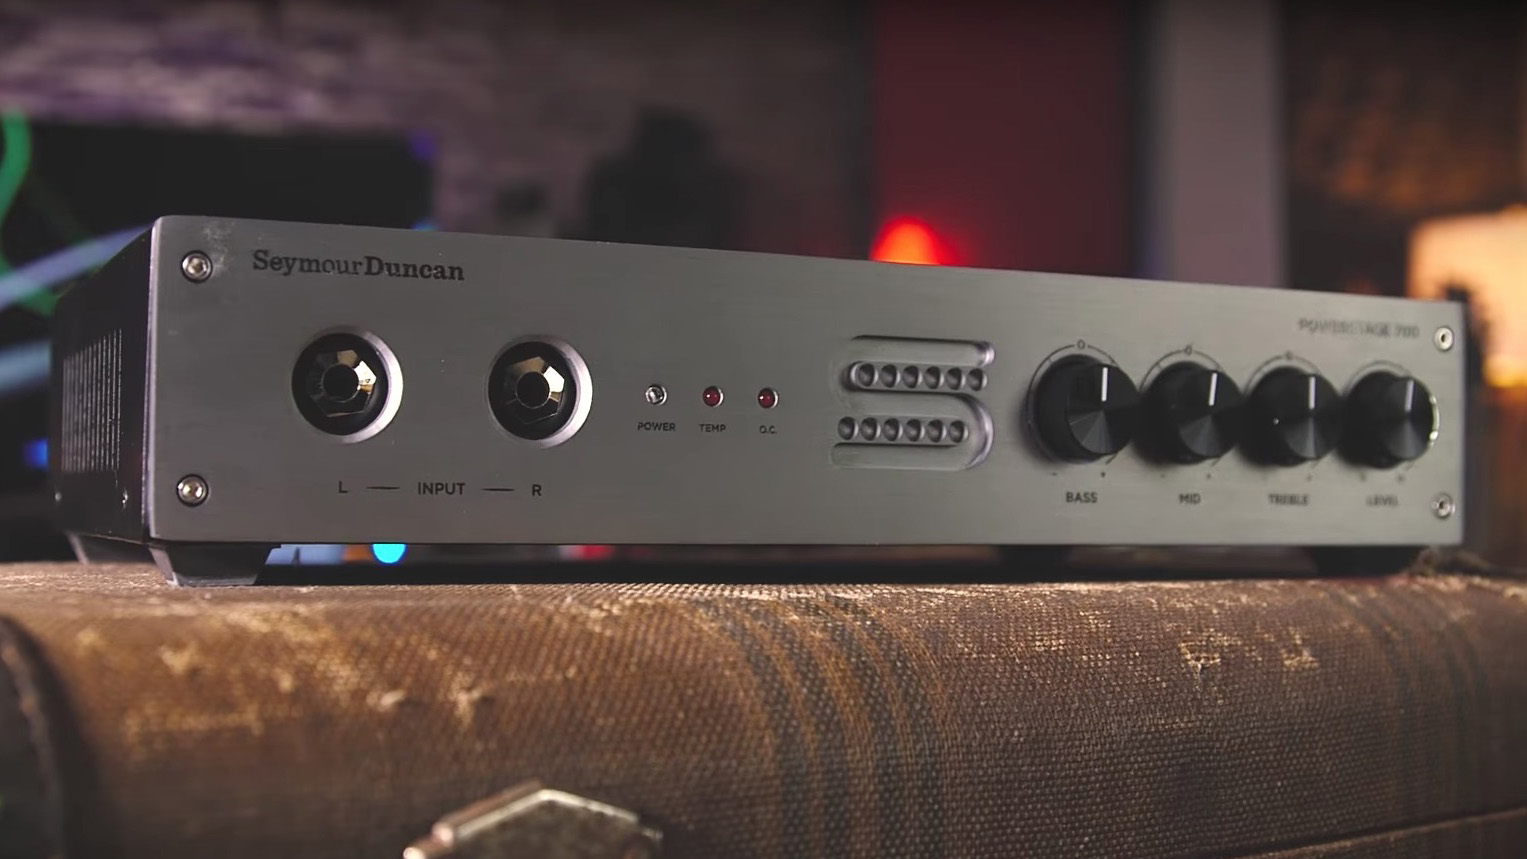 Seymour Duncan releases PowerStage 700 stereo power amp | MusicRadar